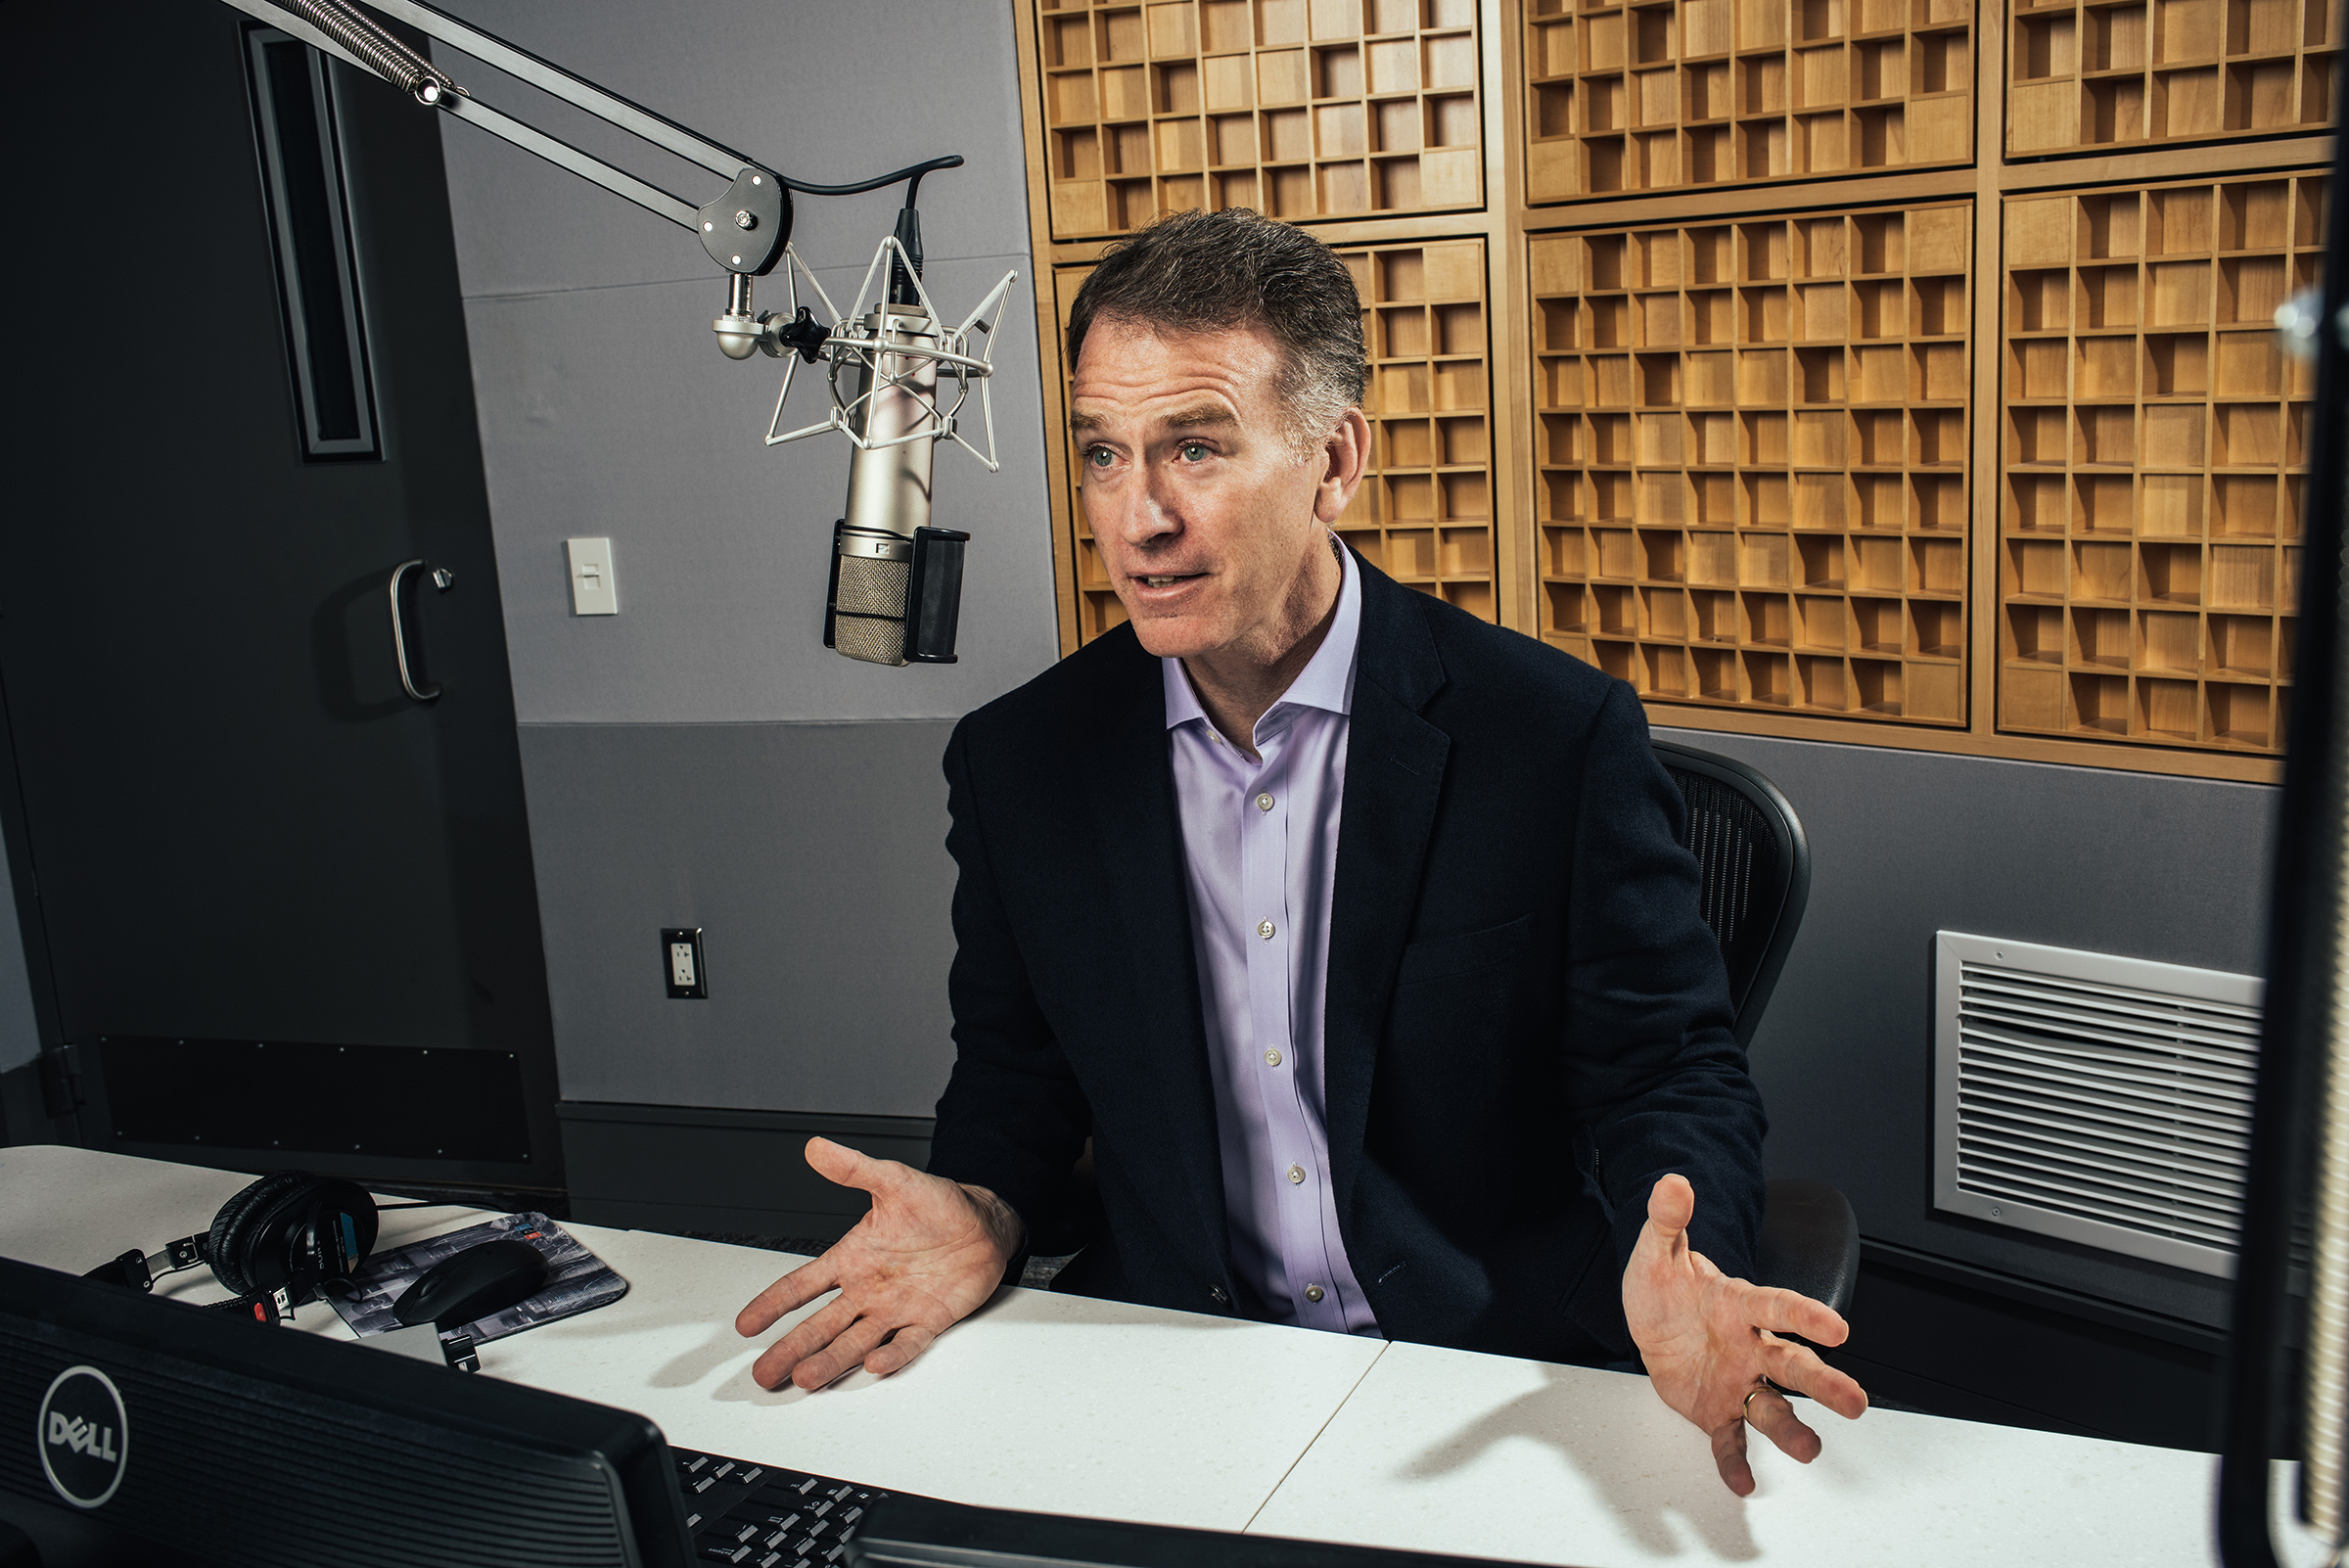 'As a journalist, I try to never have a final-final view of anything.'—Steve Inskeep, co-host of NPR's Morning Edition and author of Imperfect Union